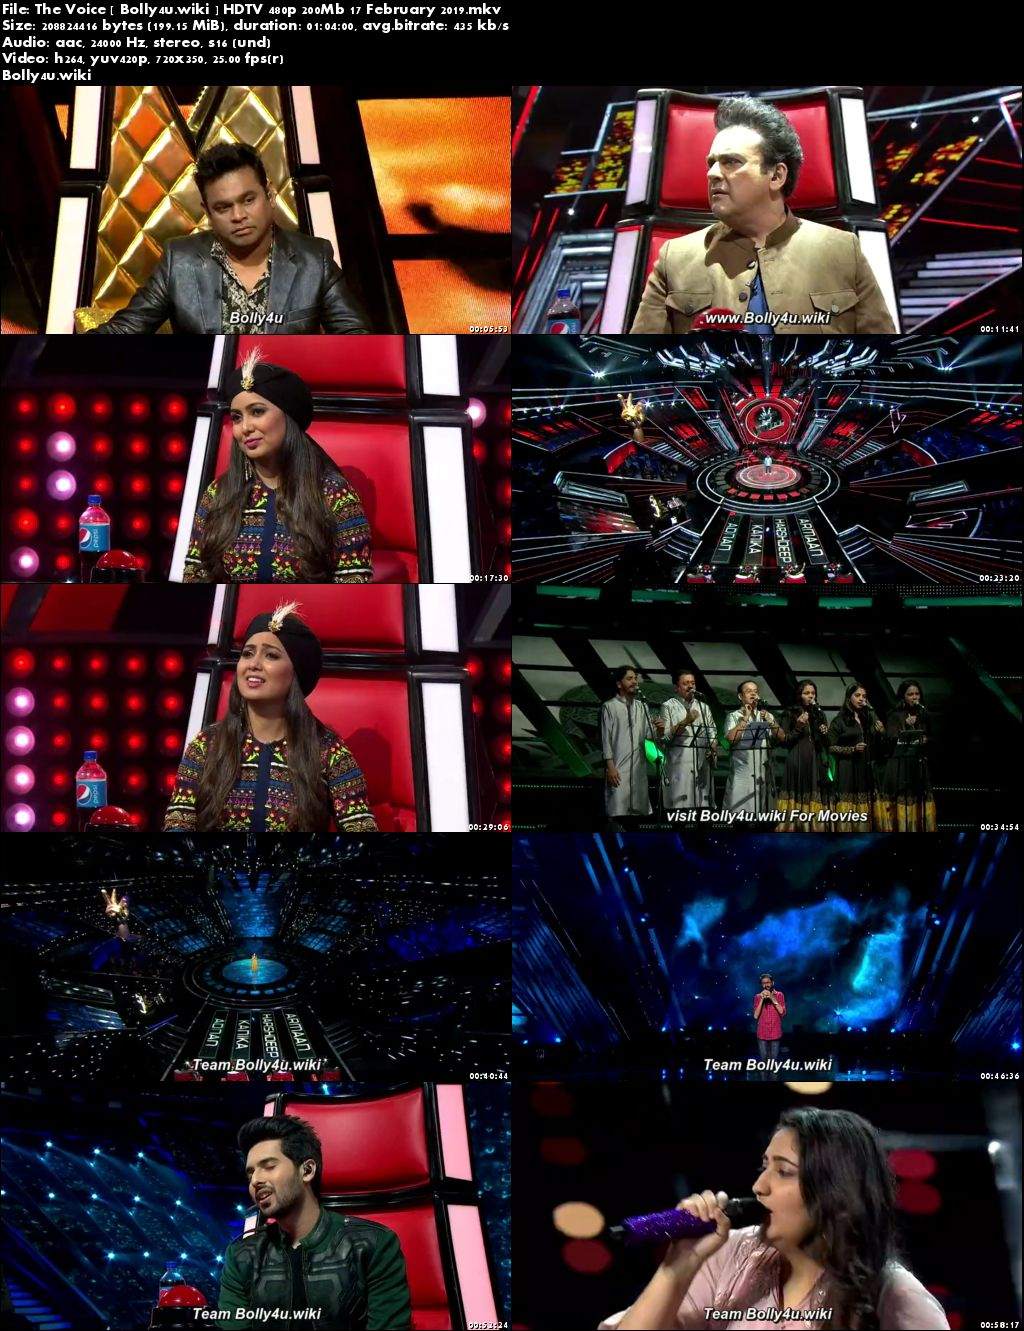 The Voice HDTV 480p 200Mb 17 February 2019 Download